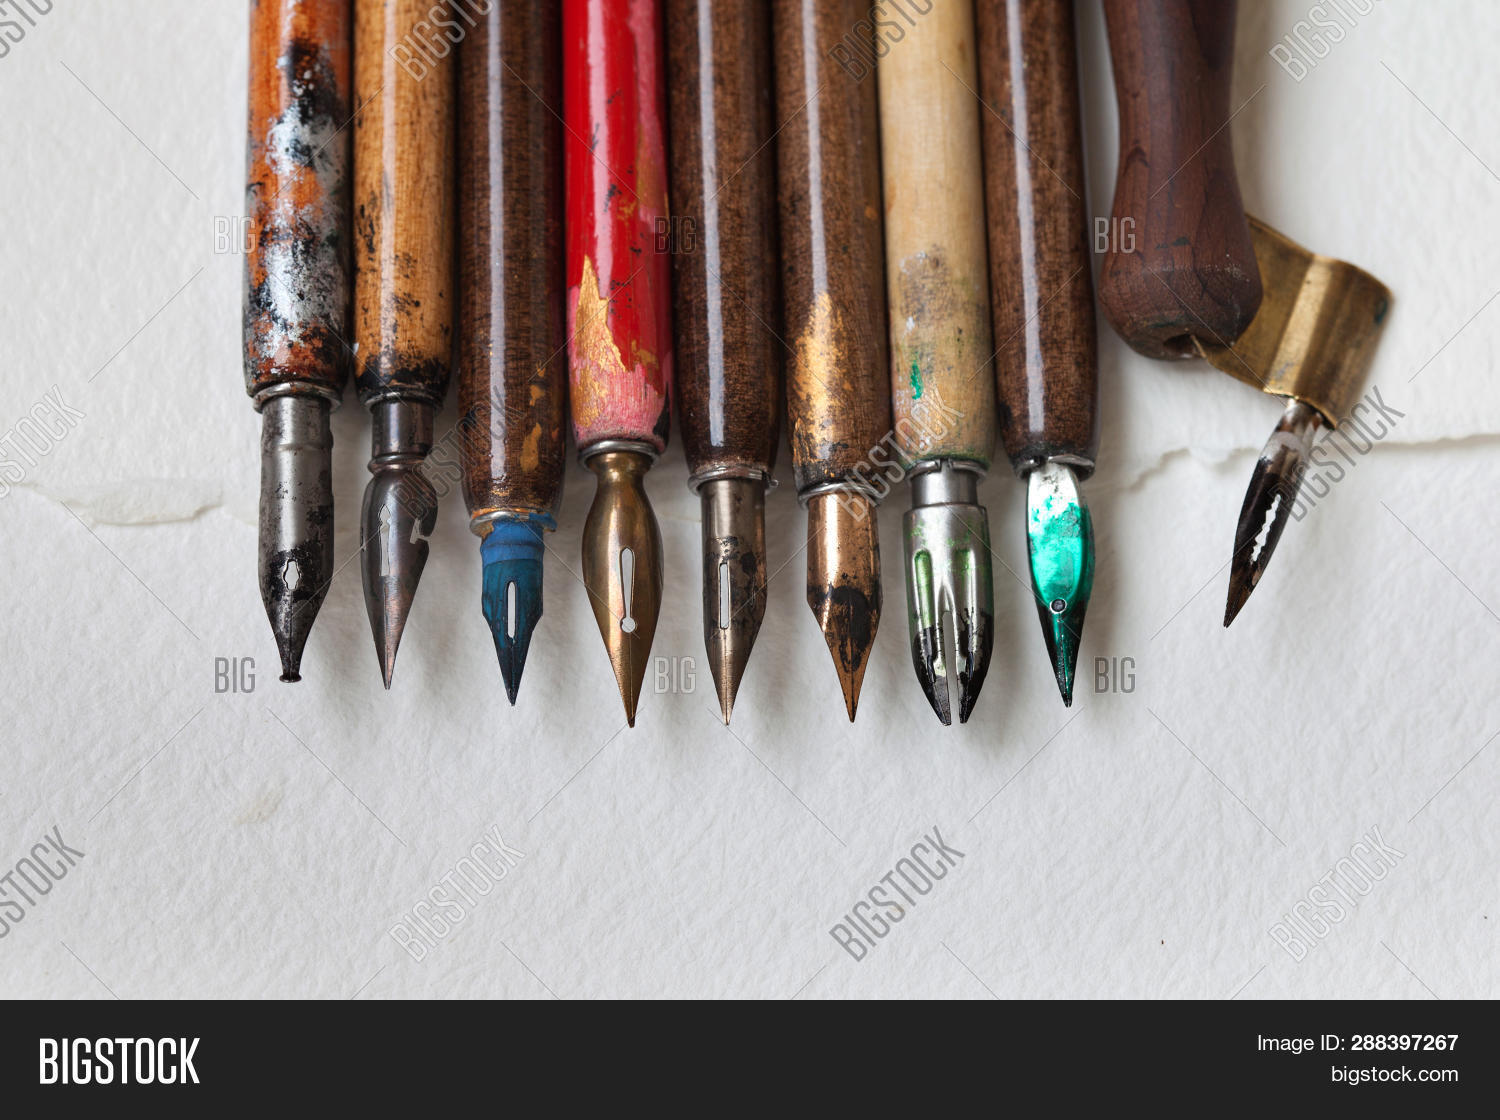 accessories,ancient,antique,art,artist,artistic,background,business,calligraphic,calligraphy,classic,closeup,collection,color,colorful,communication,creative,design,different,draw,elements,equipment,fountain,frame,handwriting,history,ink,letter,macro,metal,nib,office,old,paper,pen,retro,school,set,signature,stainless,steel,steel-nib,texture,tool,vintage,wooden,workshop,write